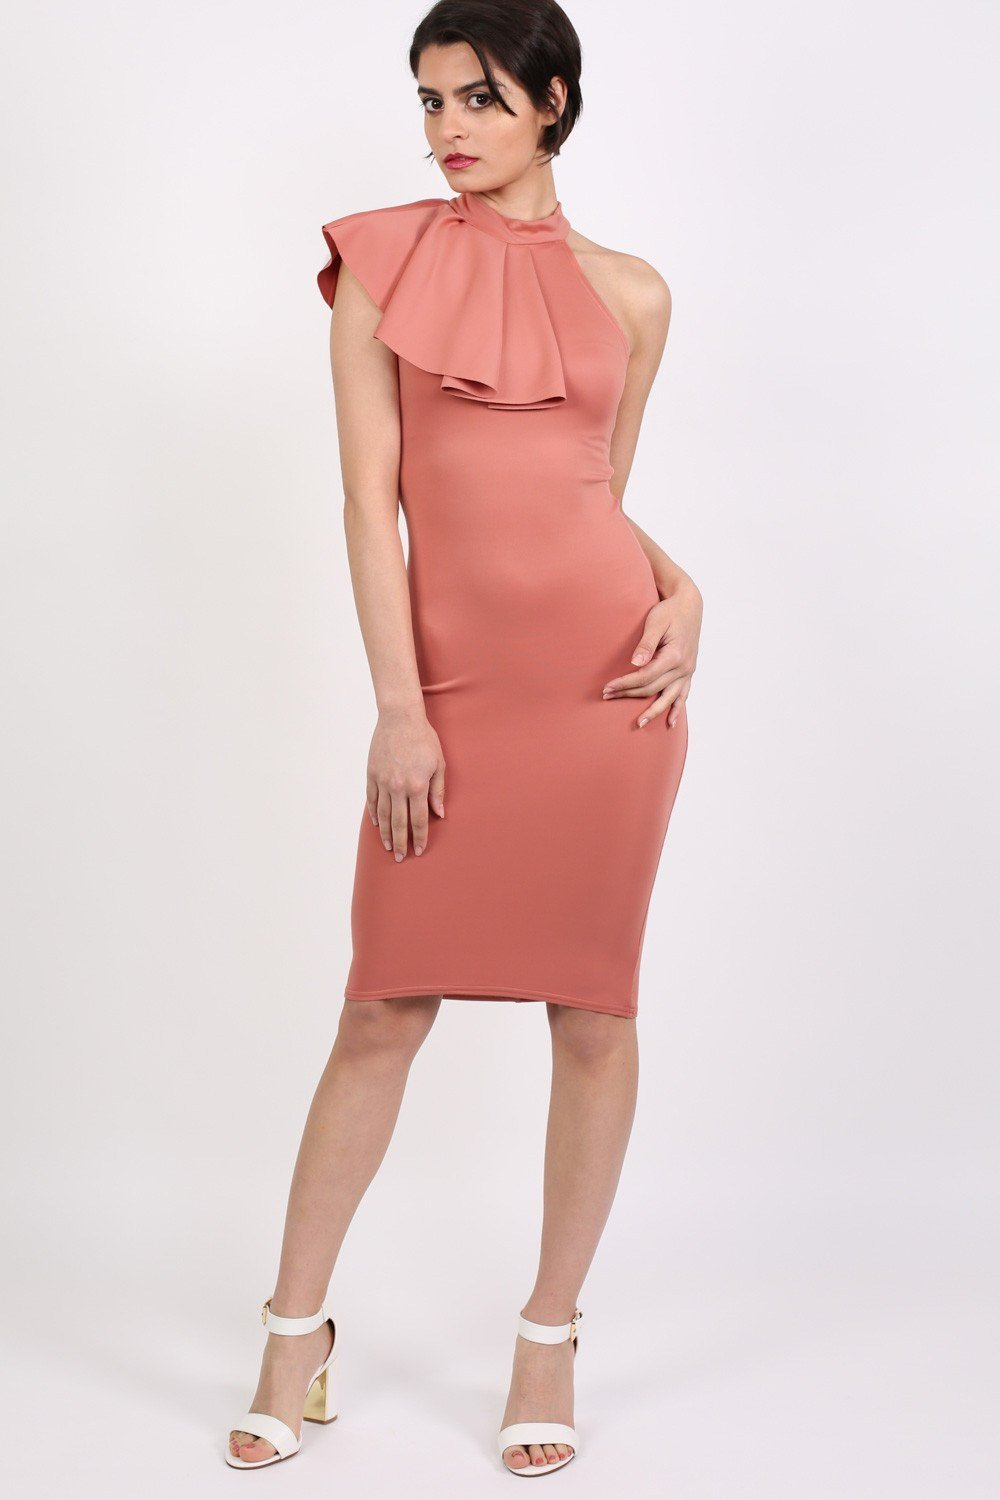 High Neck Frill Detail Bodycon Midi Dress in Coral 0